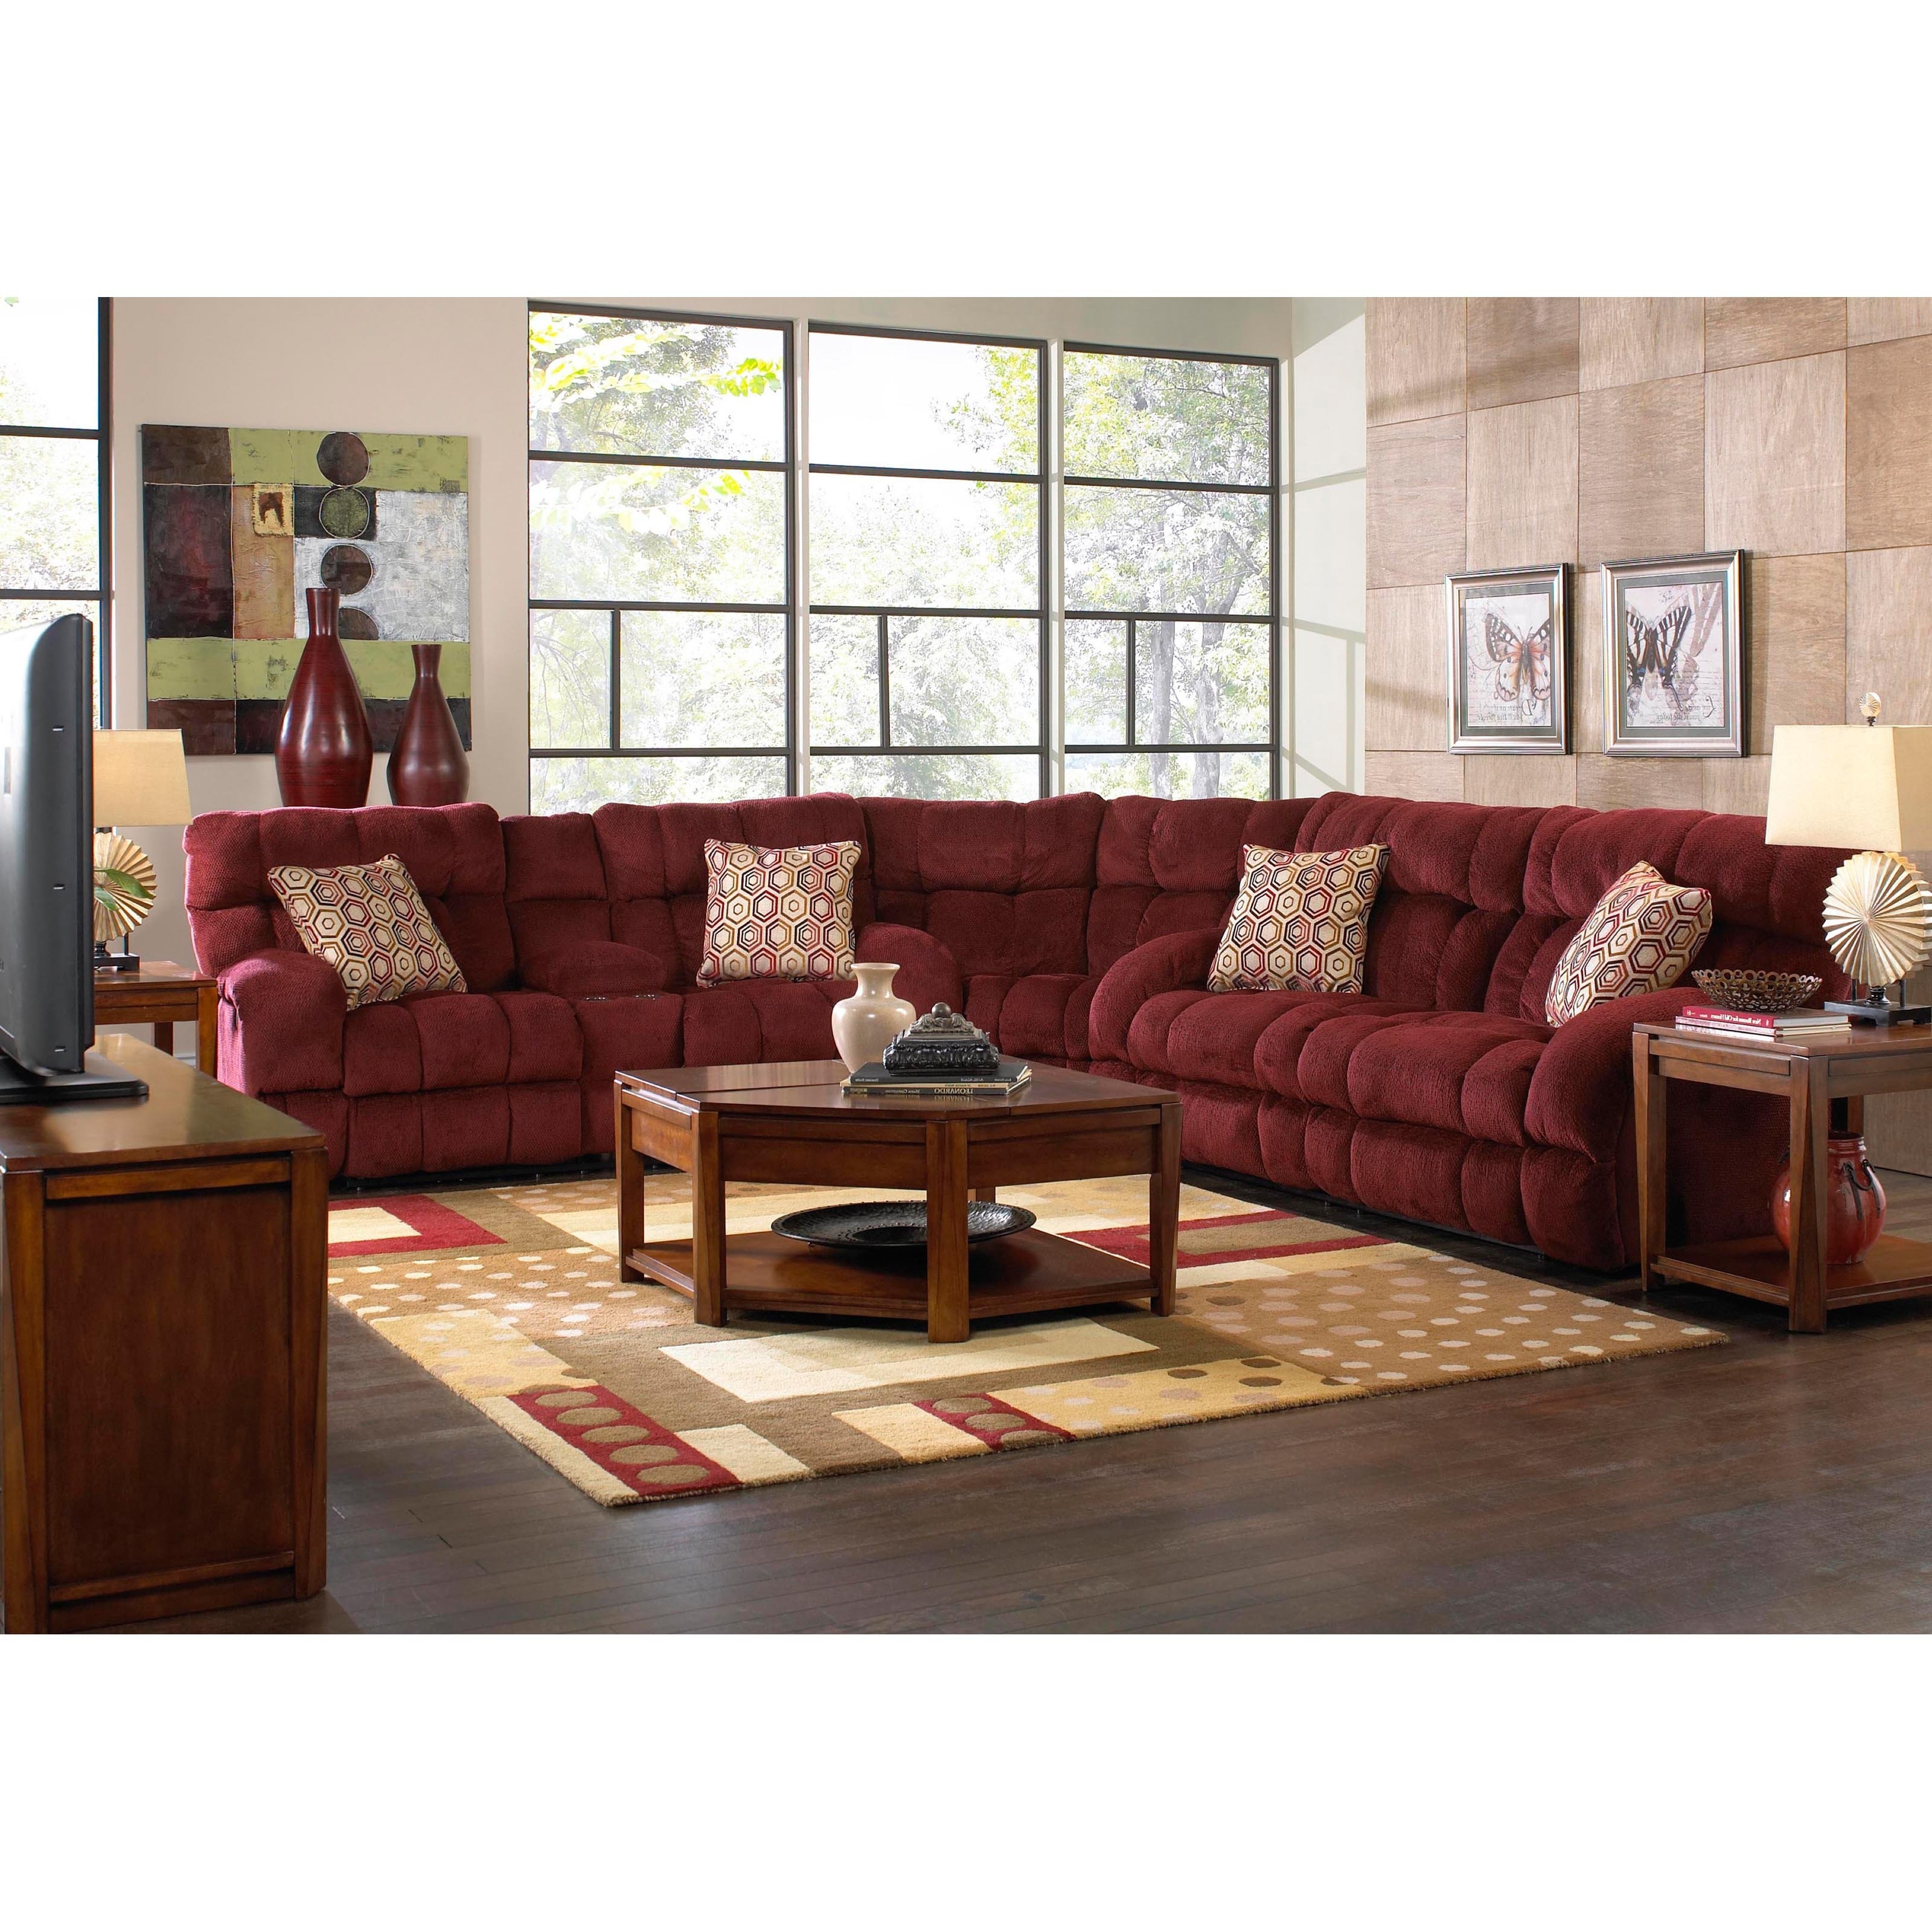 Best And Newest Jackson Ms Sectional Sofas With Regard To Catnapper Sectional Sofas (View 2 of 15)